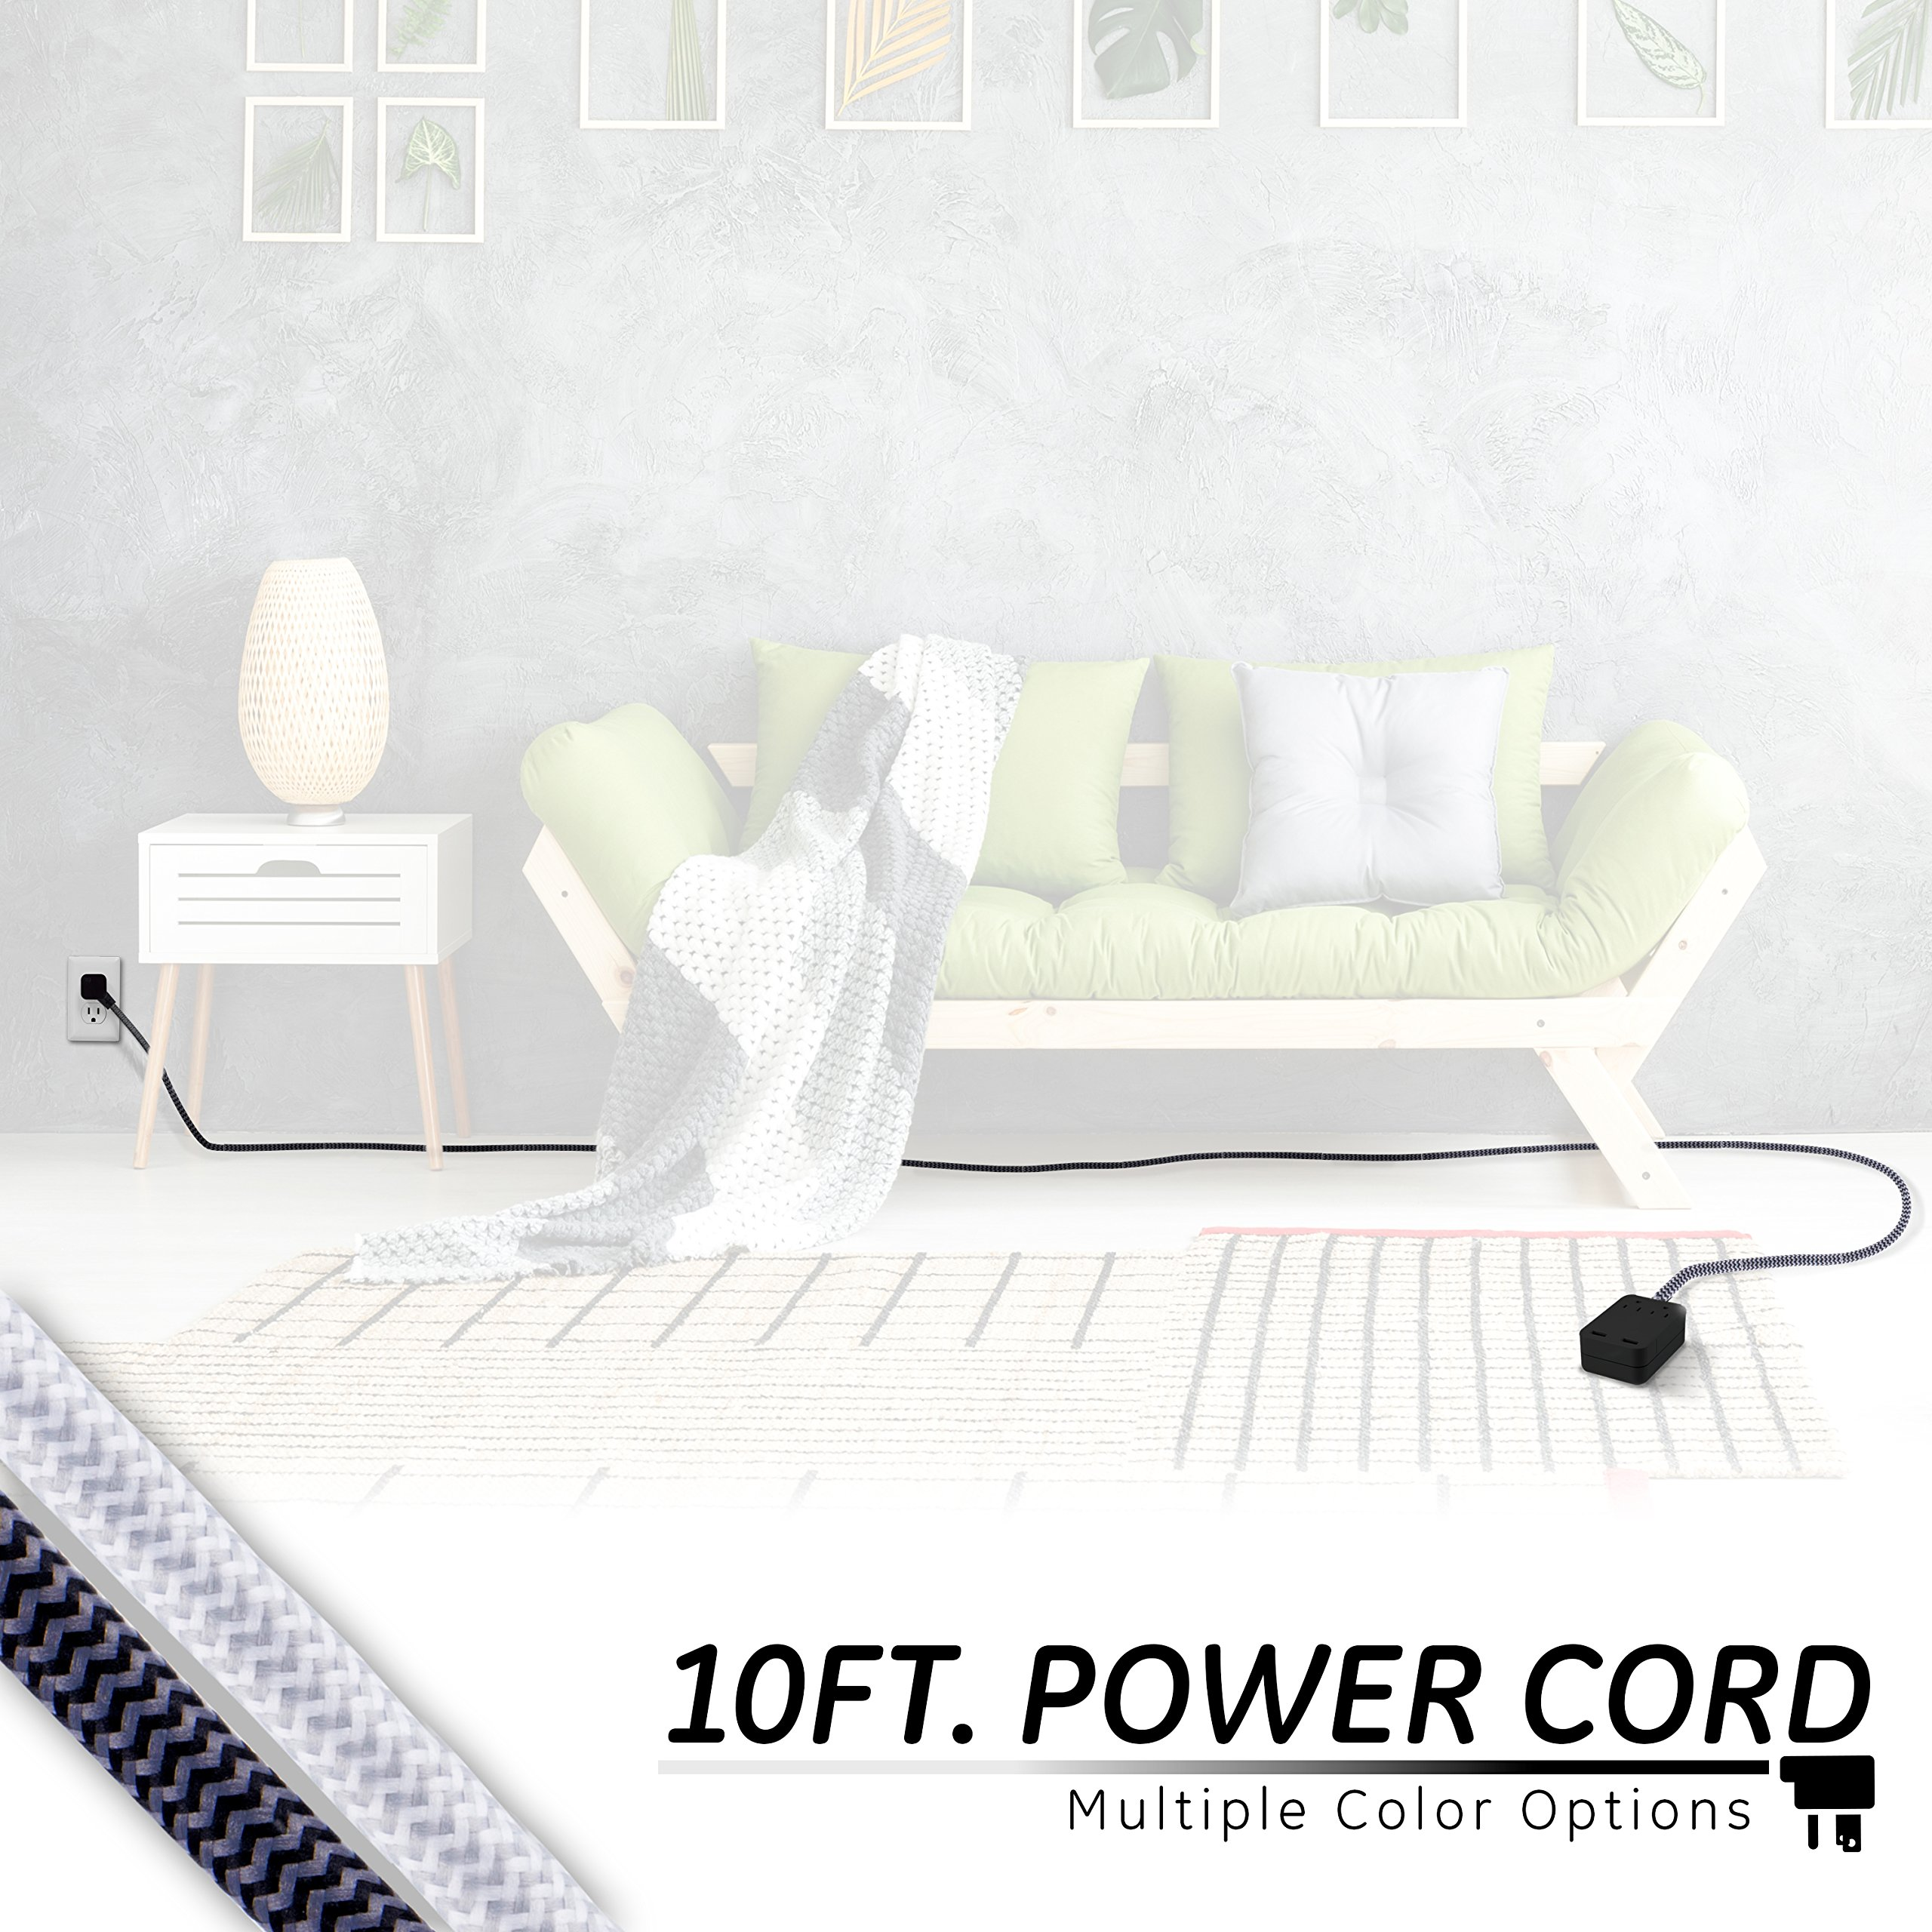 GE Pro Designer Charging Station Surge Protector Power Strip, Extra Long 10ft Braided Extension Cord, Flat Plug, 2 AC Outlets, 2 USB Ports, 2.4A Fast Charge, Wall Mount, UL Listed, Black/Gray, 41500 by GE (Image #3)